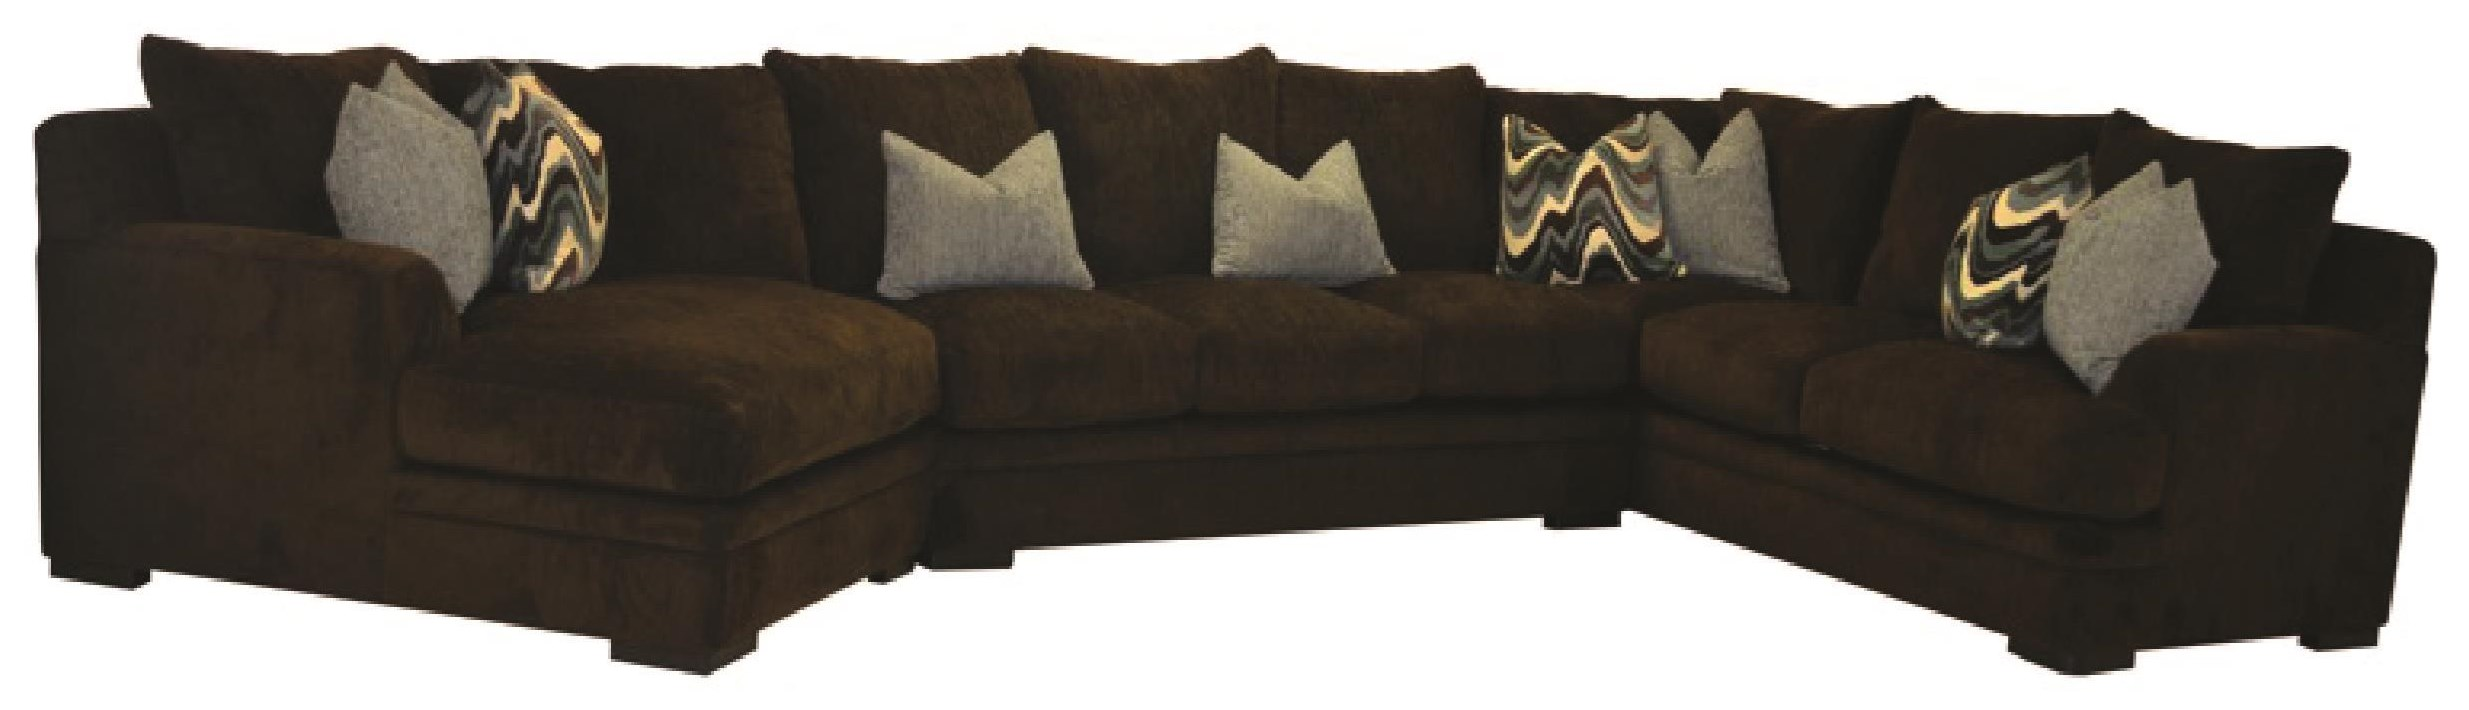 3 PC Sectional with Cuddler